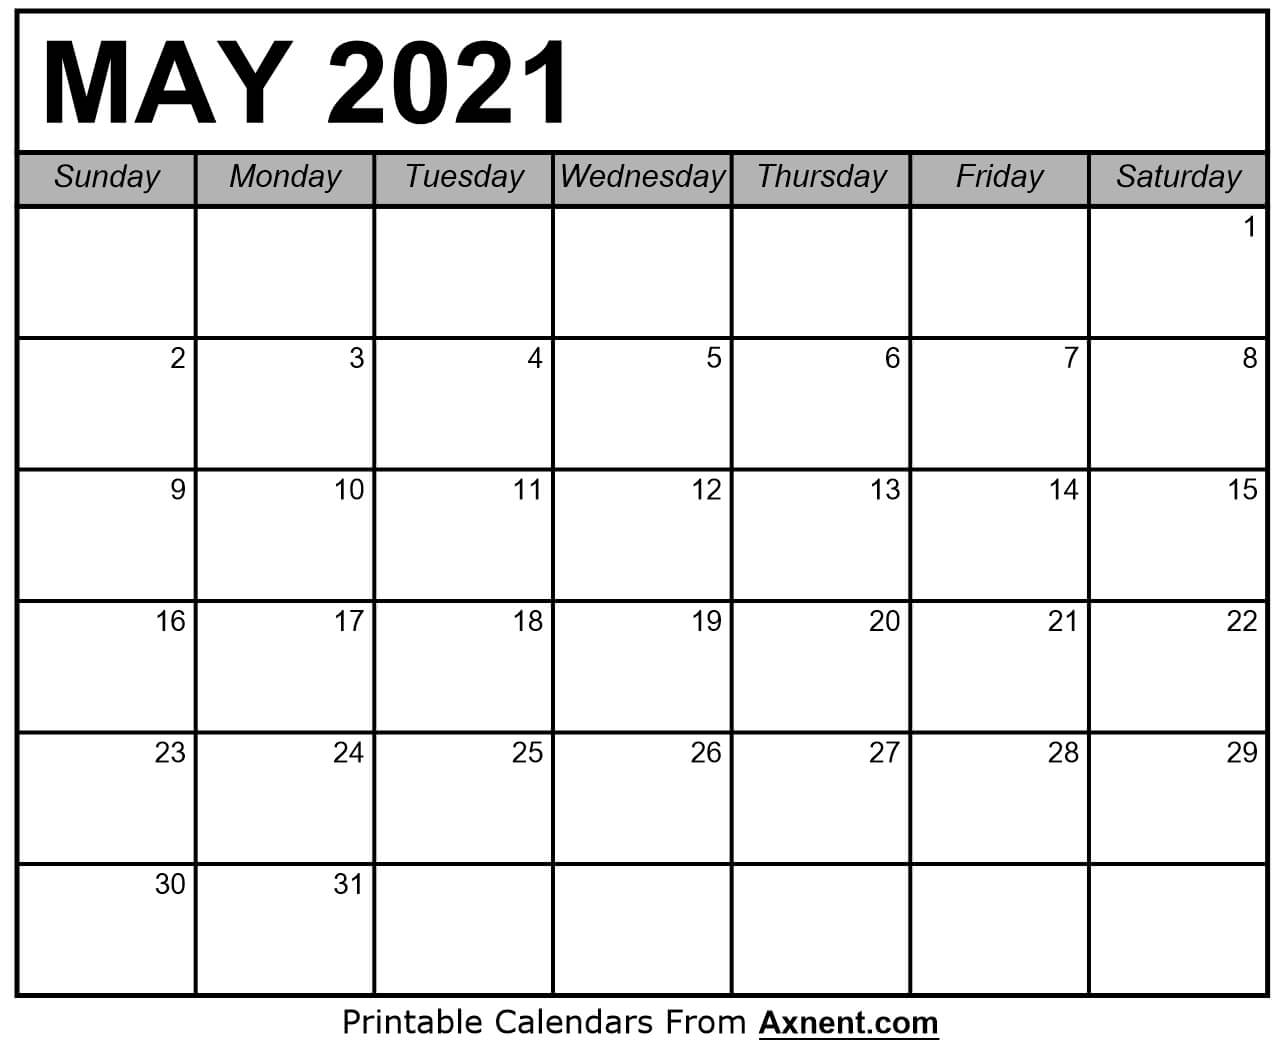 Printable May 2021 Calendar Template - Time Management ...